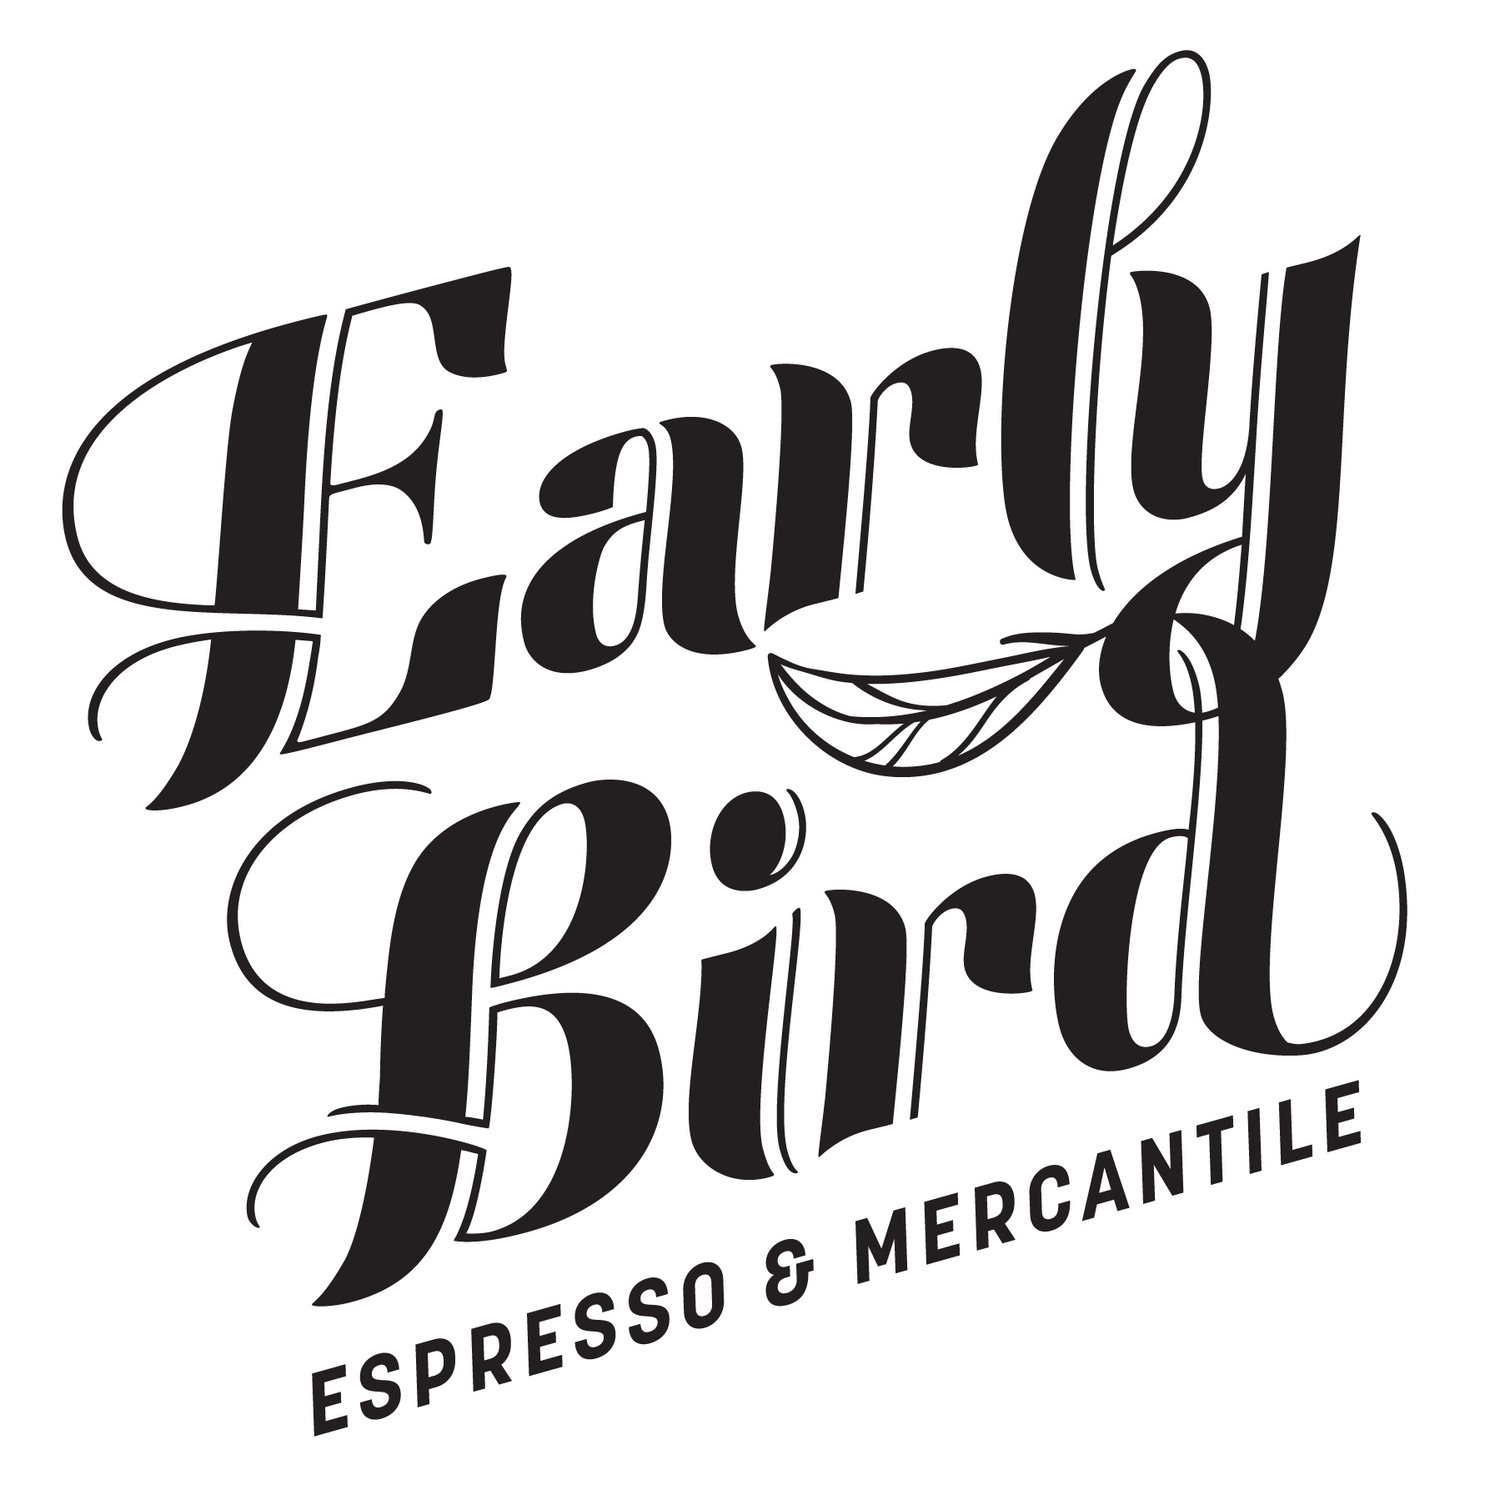 Early Bird Espresso